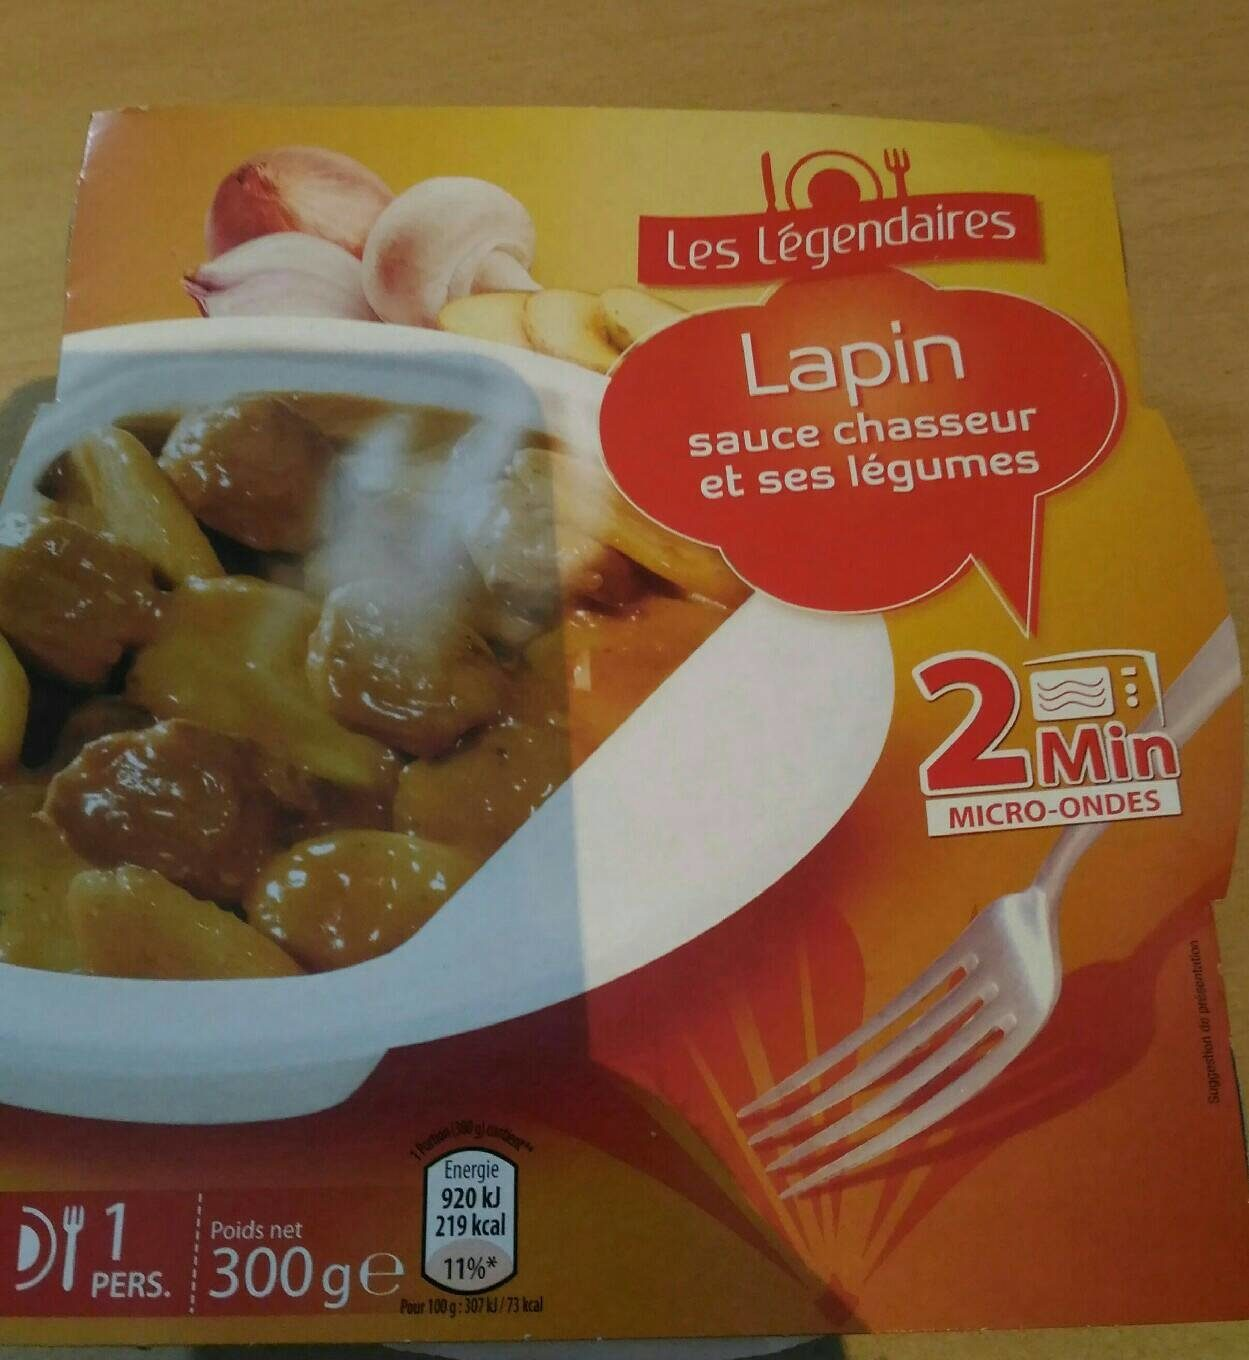 Lapin sauce chasseur - Product